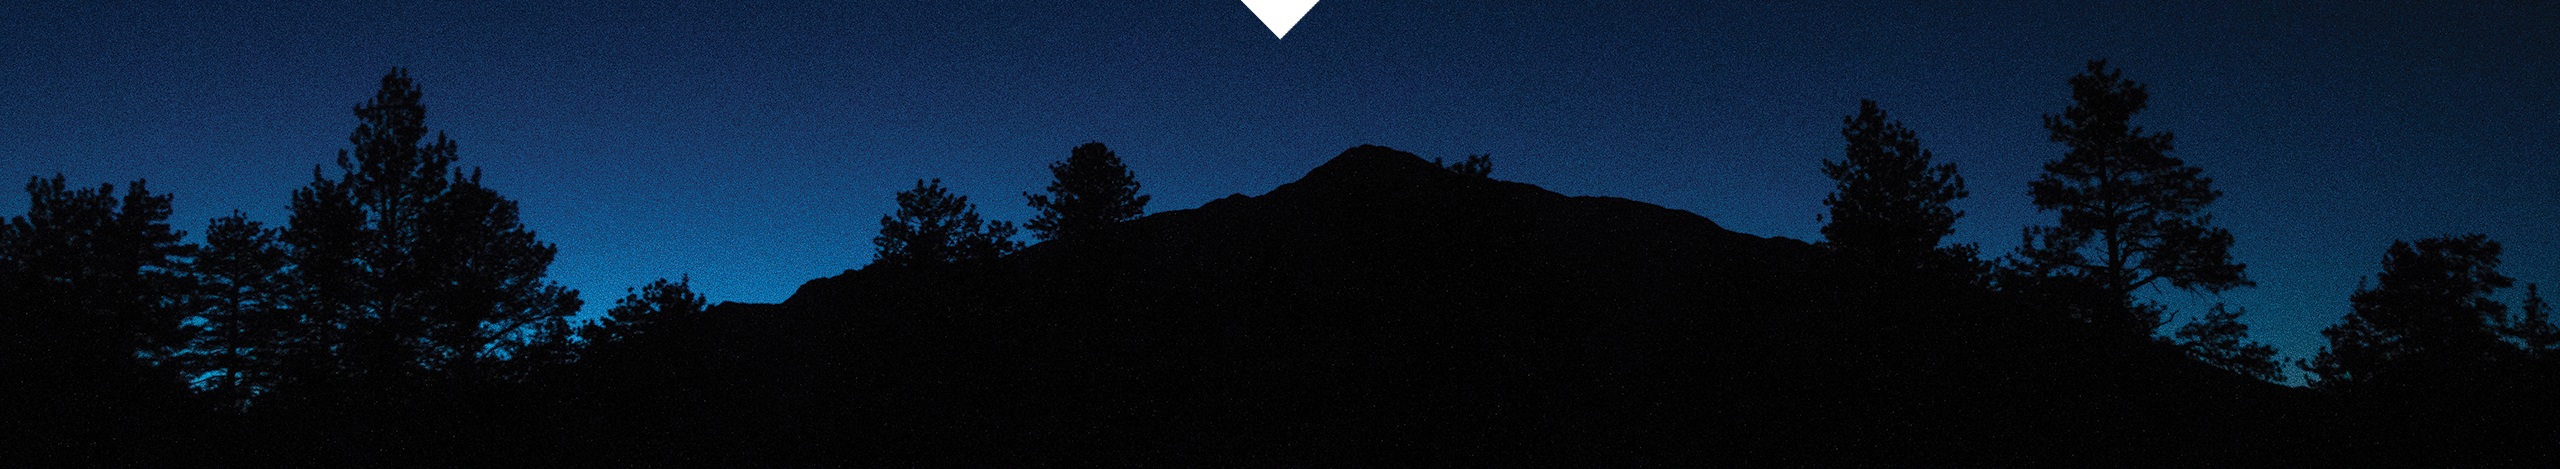 Silhouette of mountains and trees against dark blue night sky